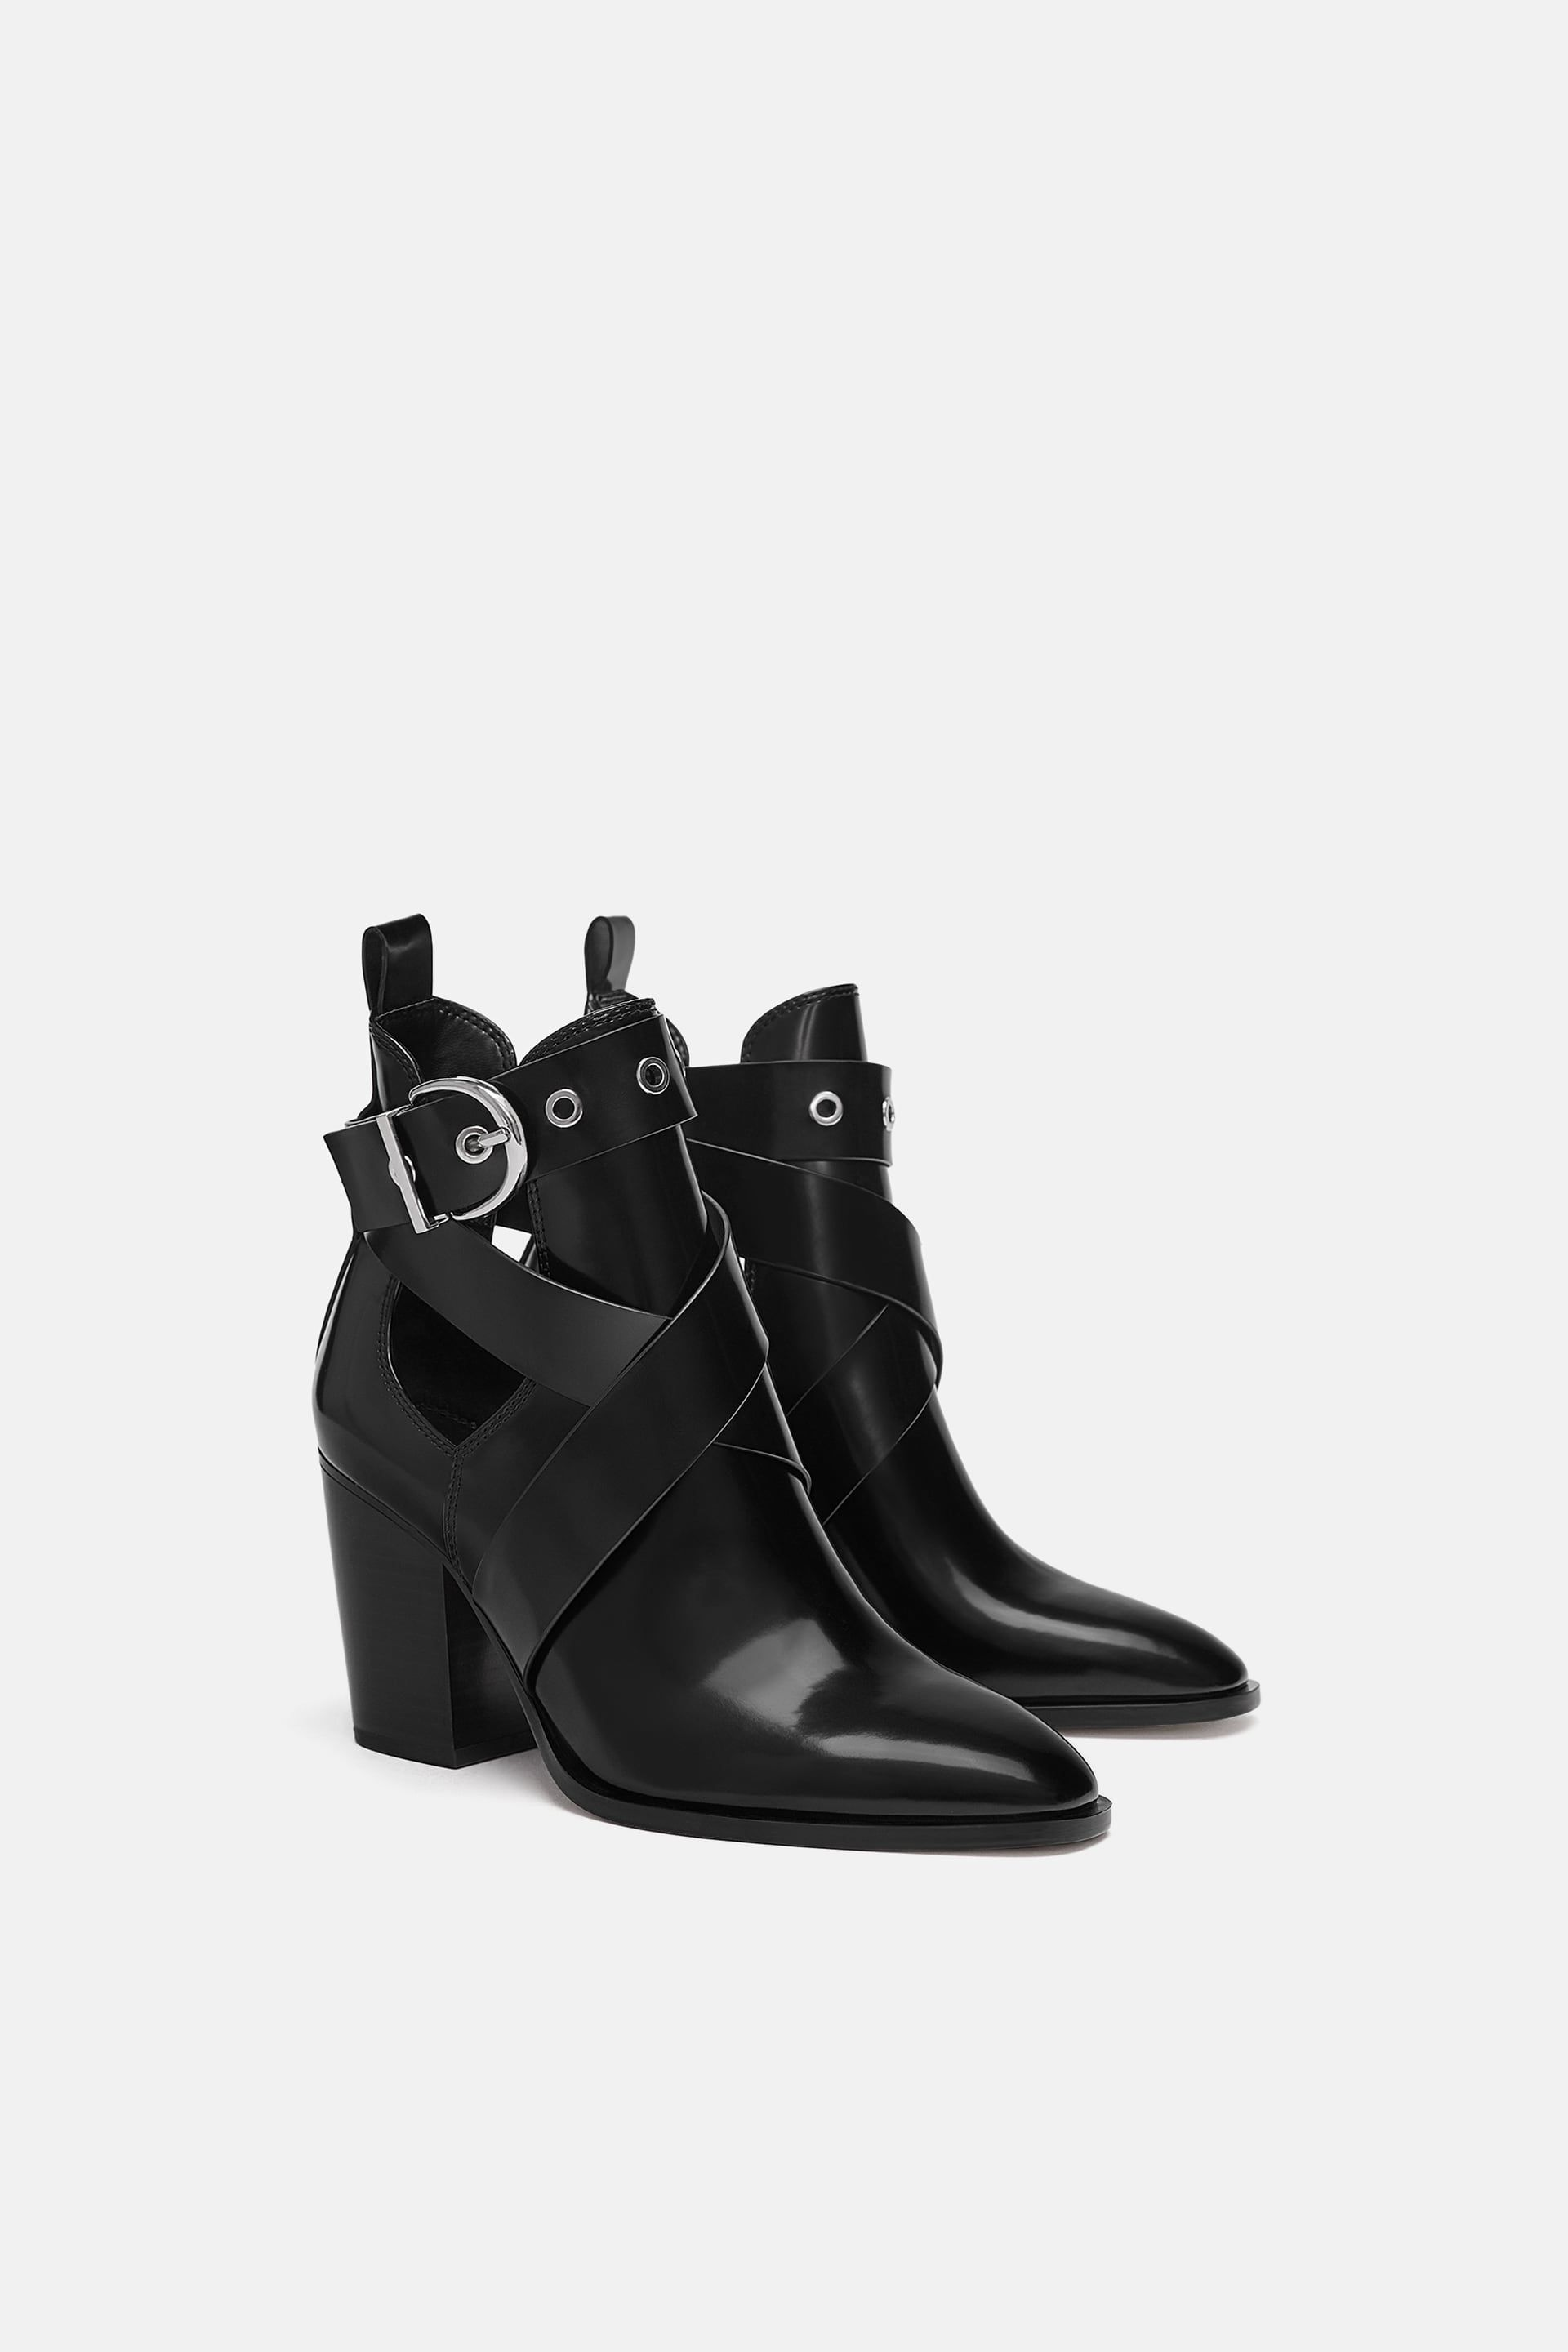 0c9bef1eff69 BOTÍN TACÓN CUT OUT in 2019 | Heels/Shoes | Boots, Heeled boots, Shoes